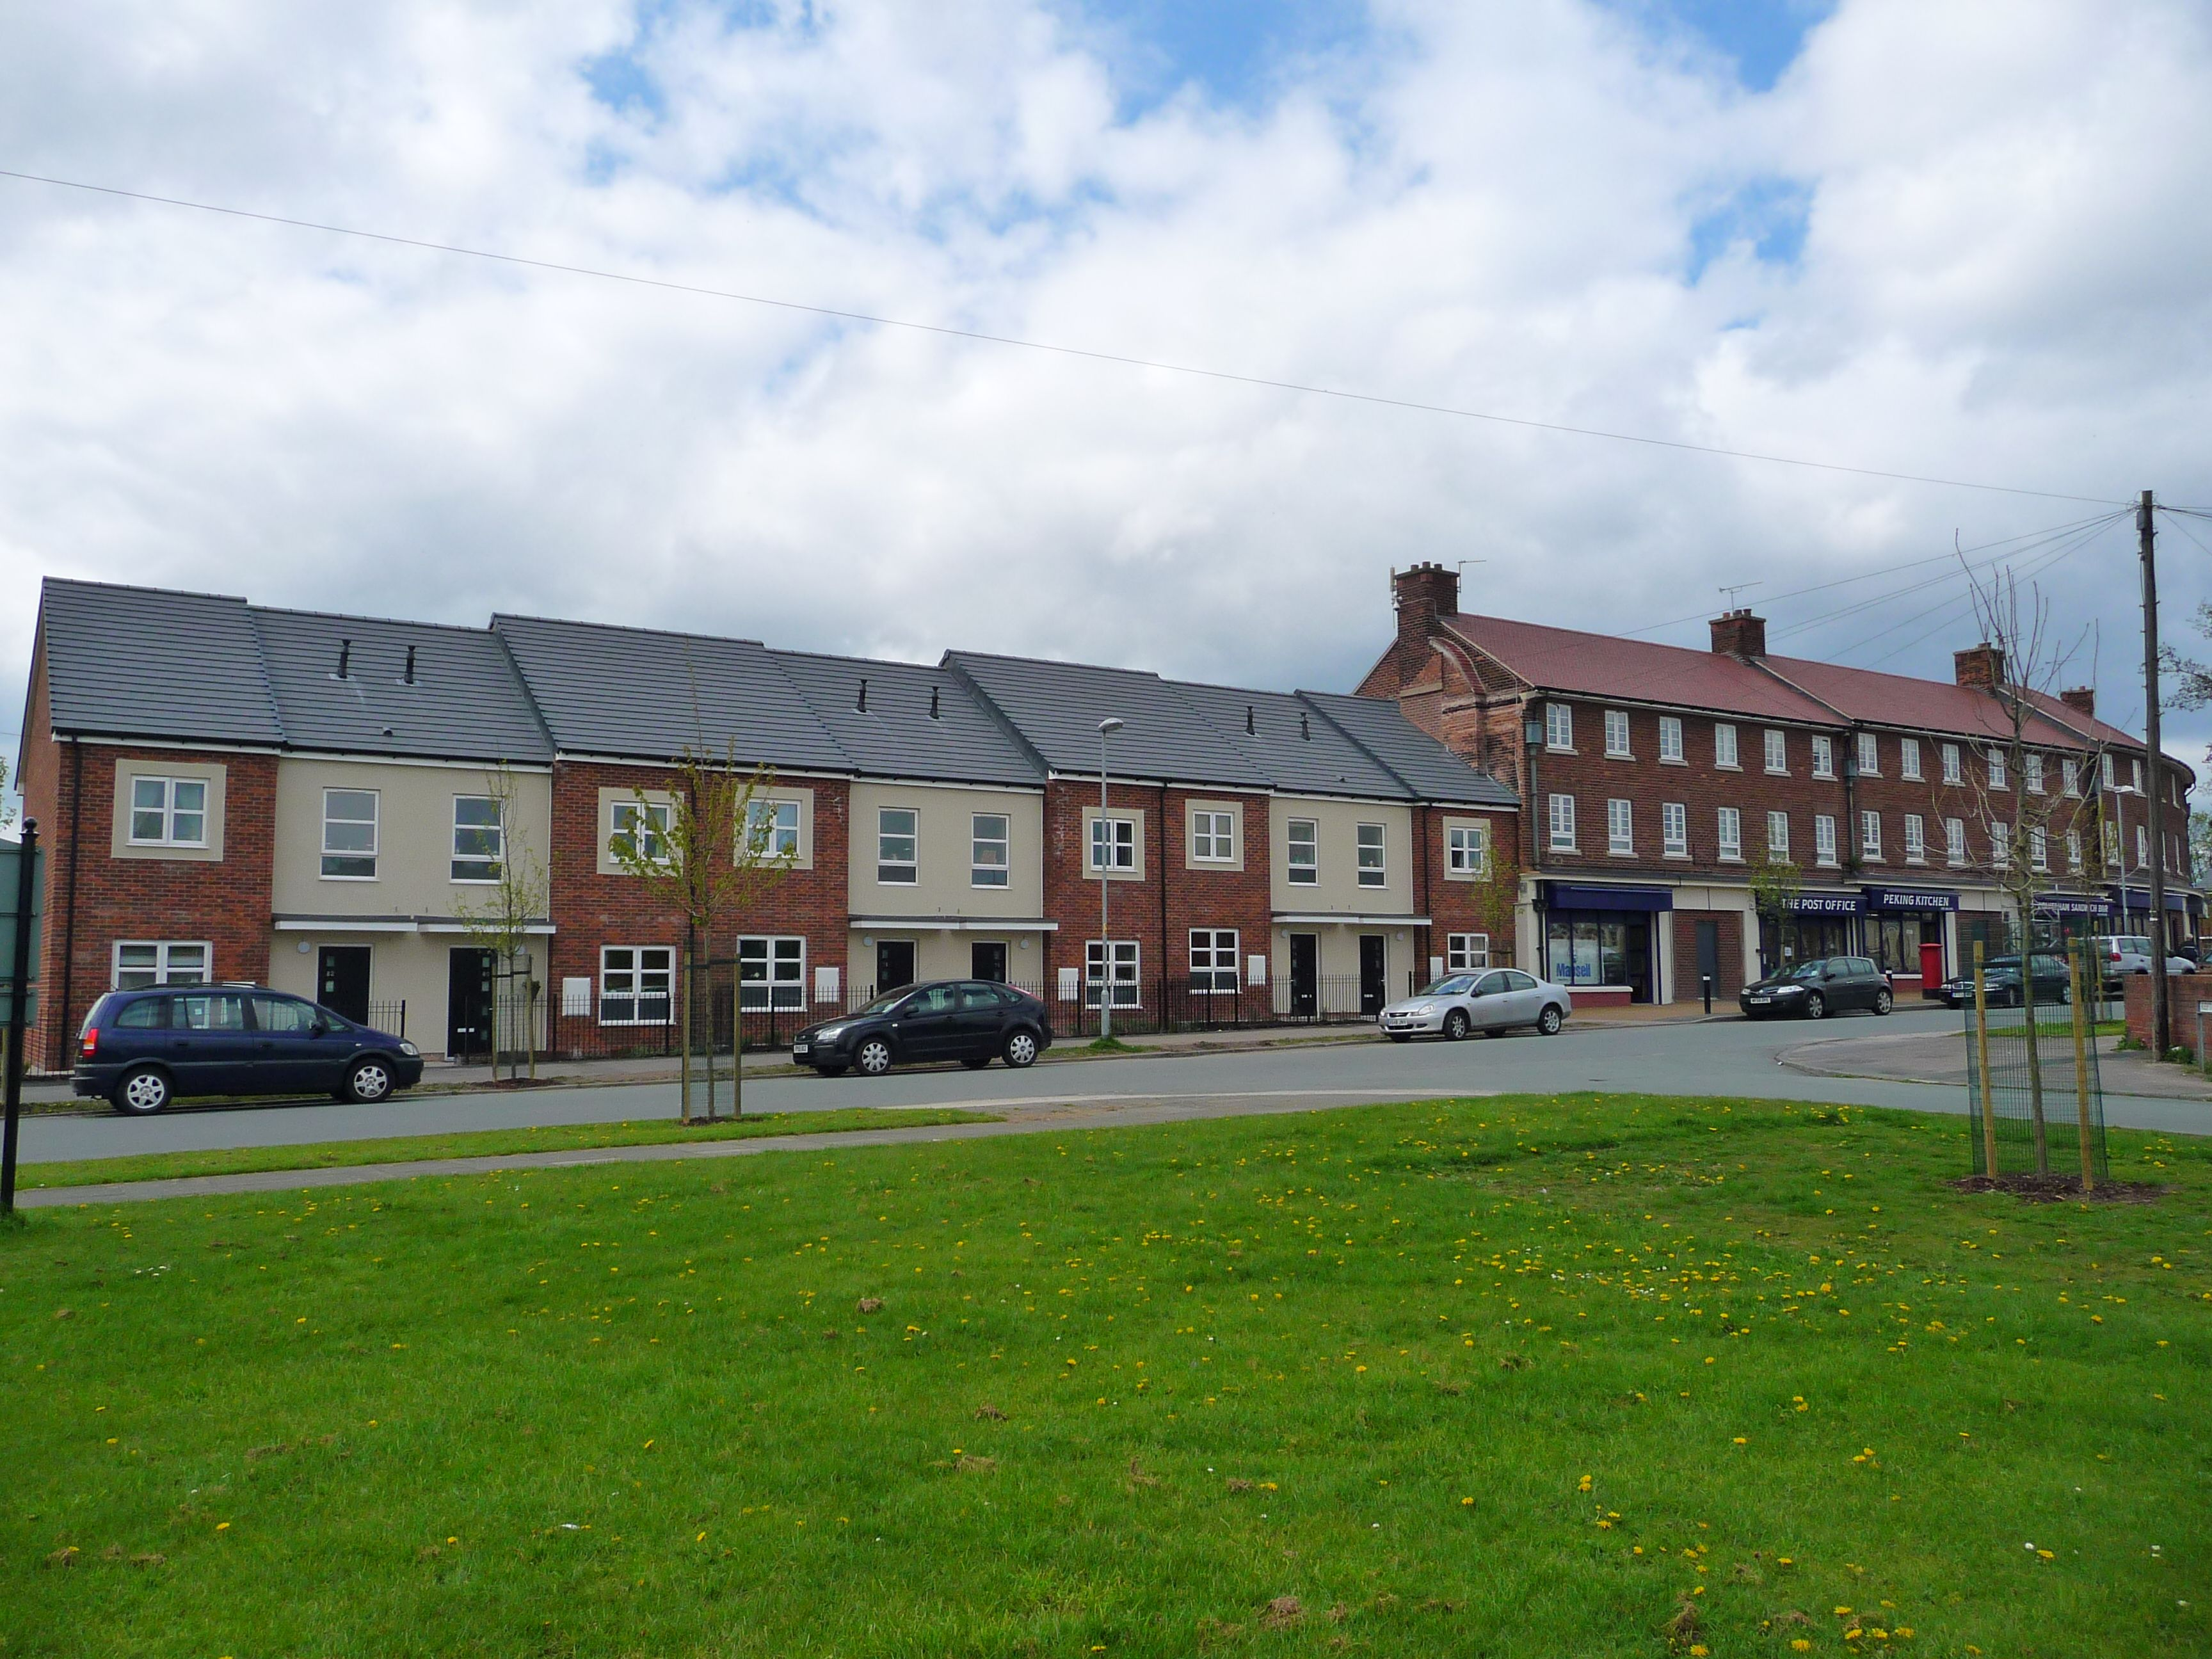 Milton Road, Ellesmere Port. Built on behalf of Muir Group Housing Association this scheme was a development of 29 new build houses and flats, refurbishment of 10 maisonette units and 10 retail units, and improvements to public realm. Croft Goode Architects.